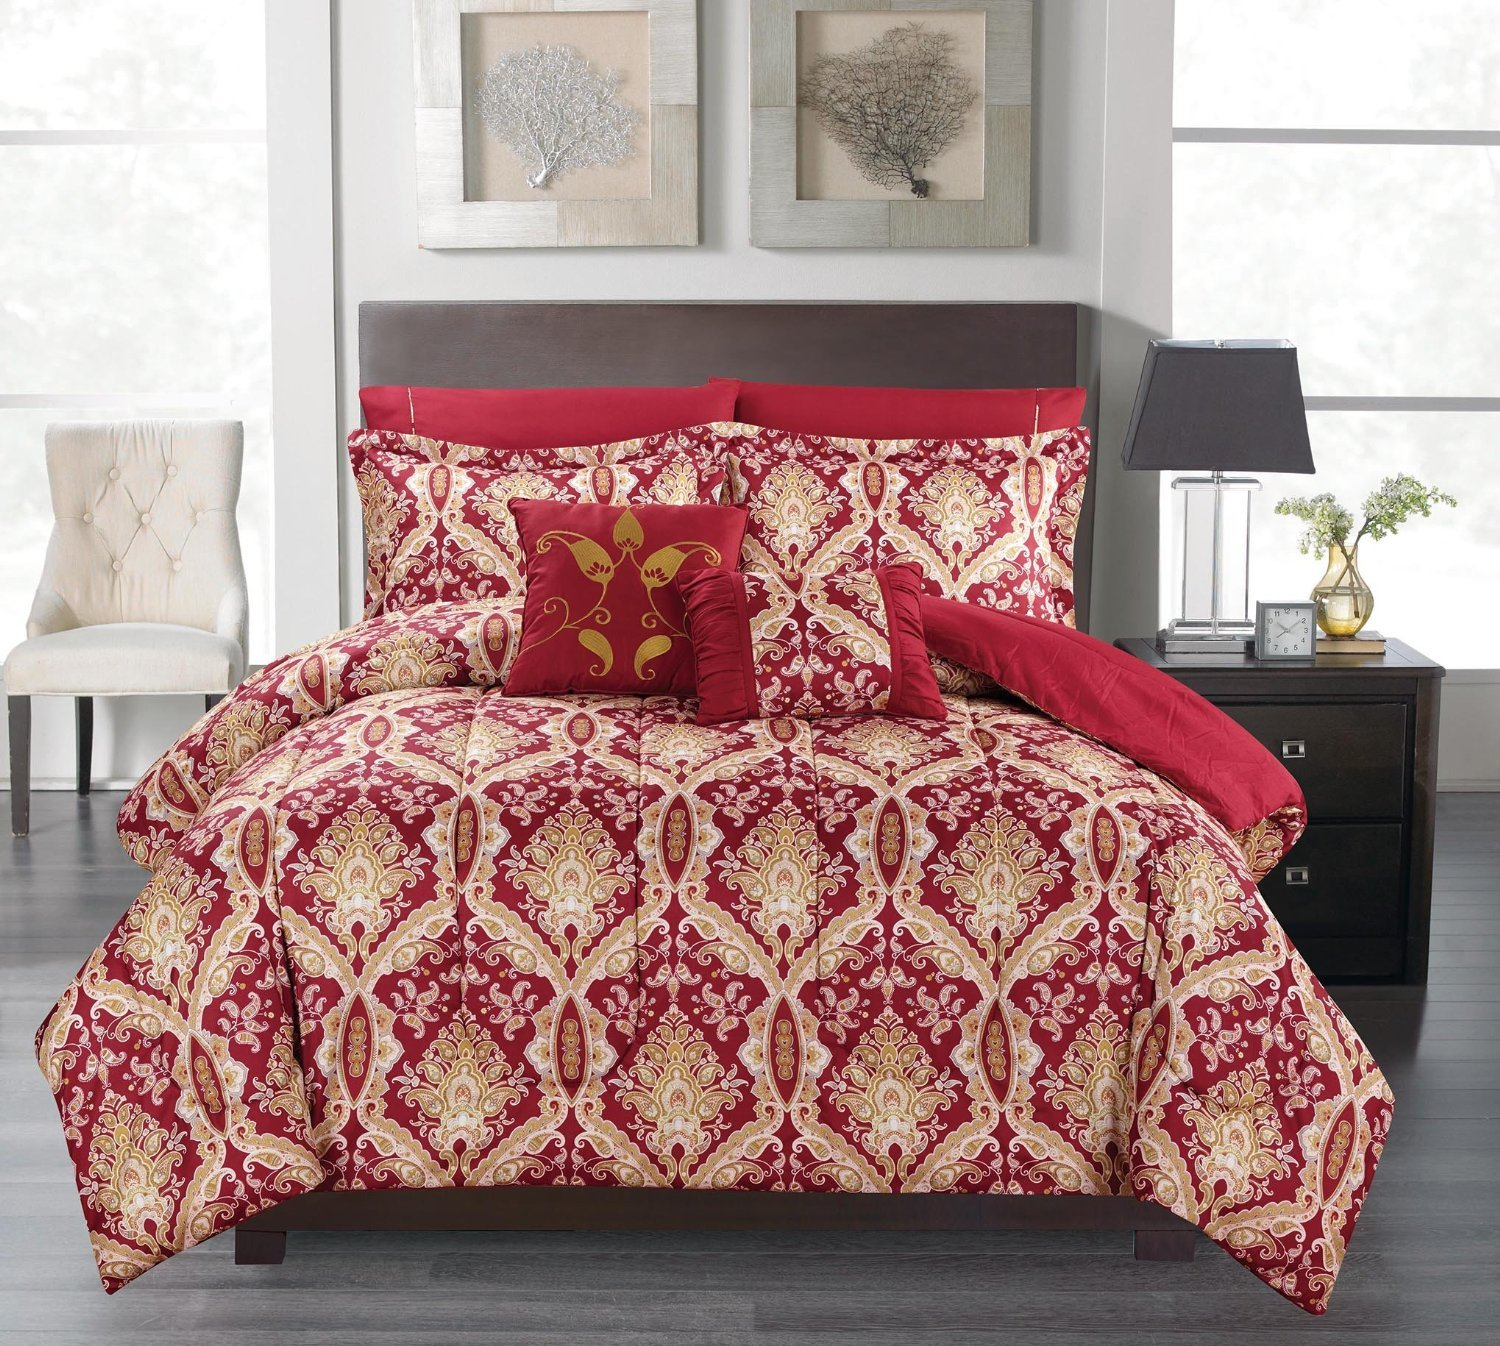 Reversible 7 Pcs Comforter Set, Queen Size, Russian Burgundy